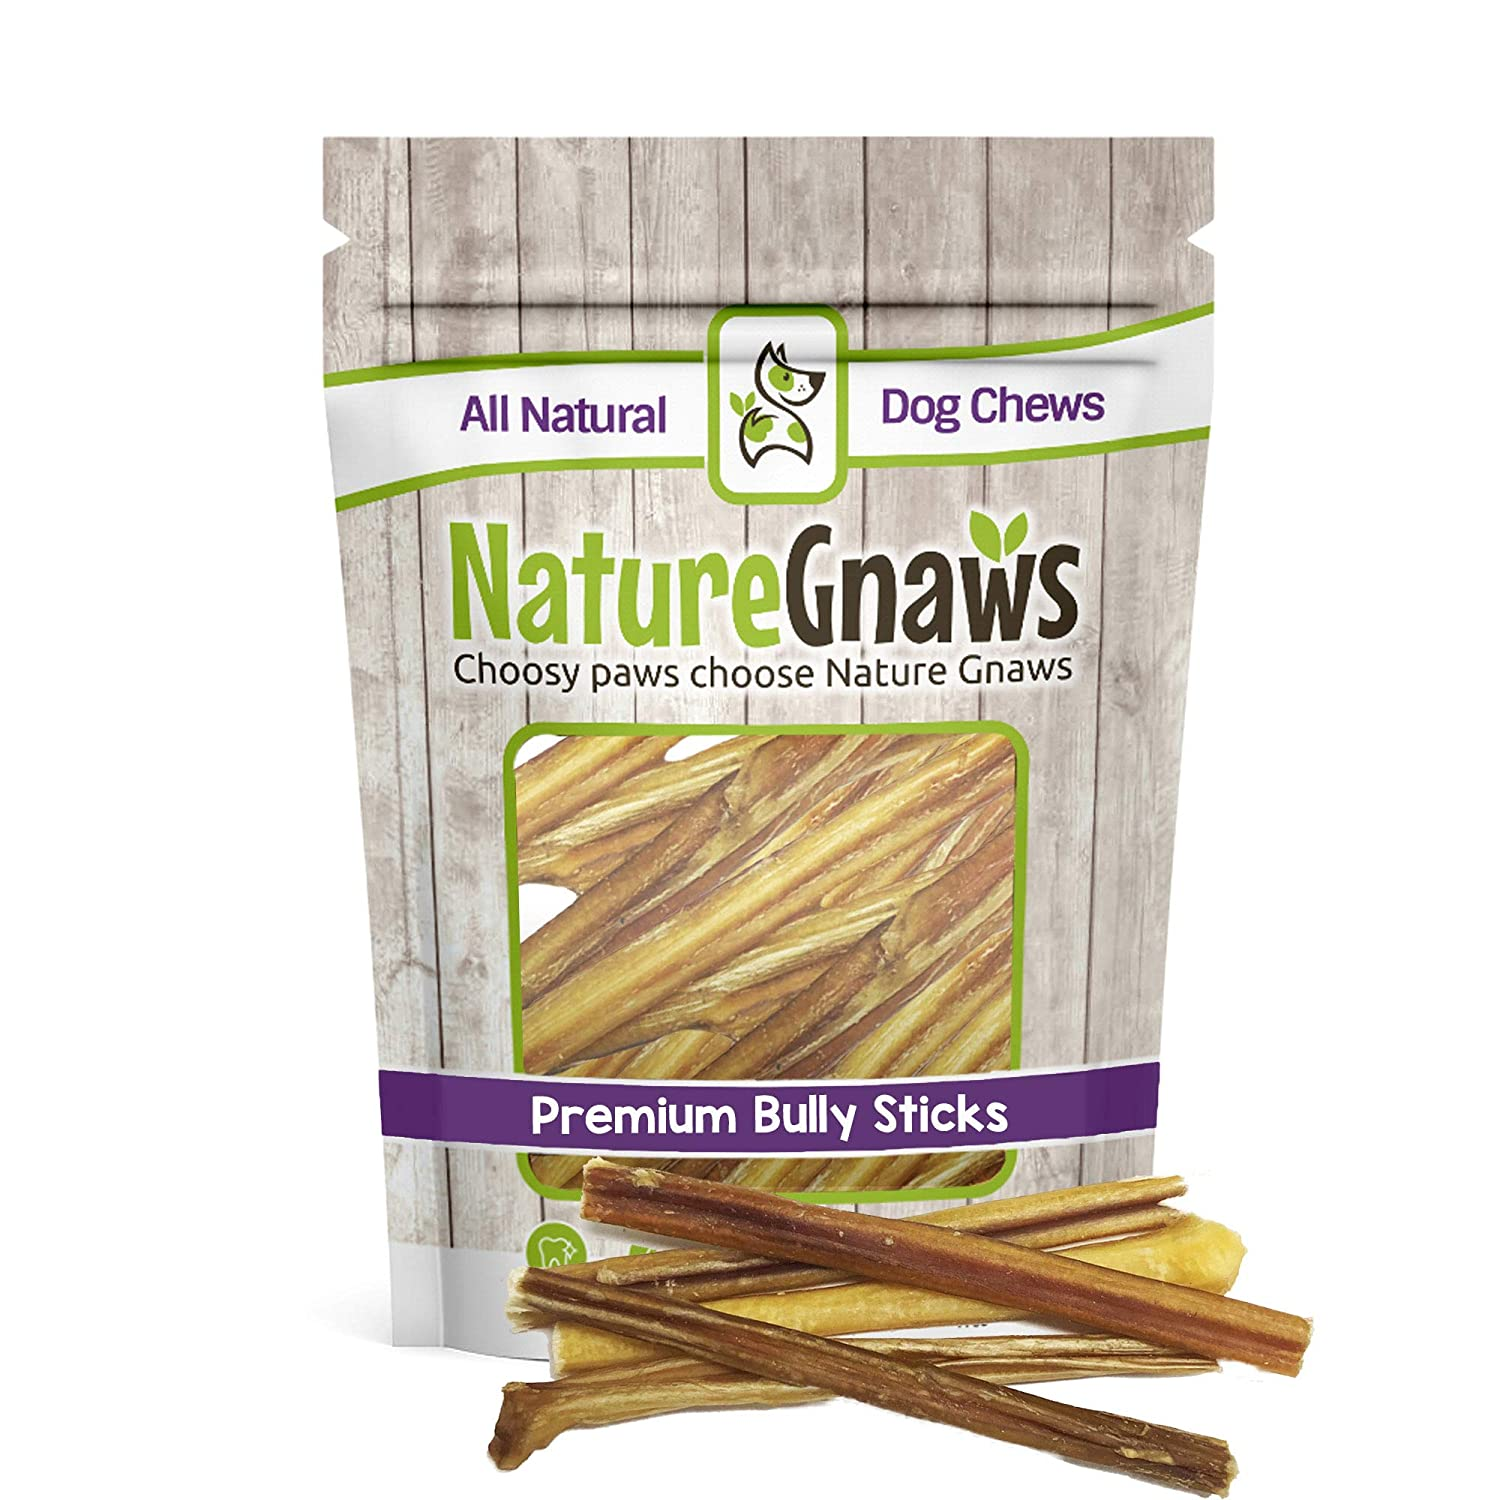 Extra Thin 5-6\ Nature Gnaws Extra Thin Bully Sticks 5-6  (25 Pack) 100% All-Natural Grass-Fed Free-Range Premium Beef Dog Chews